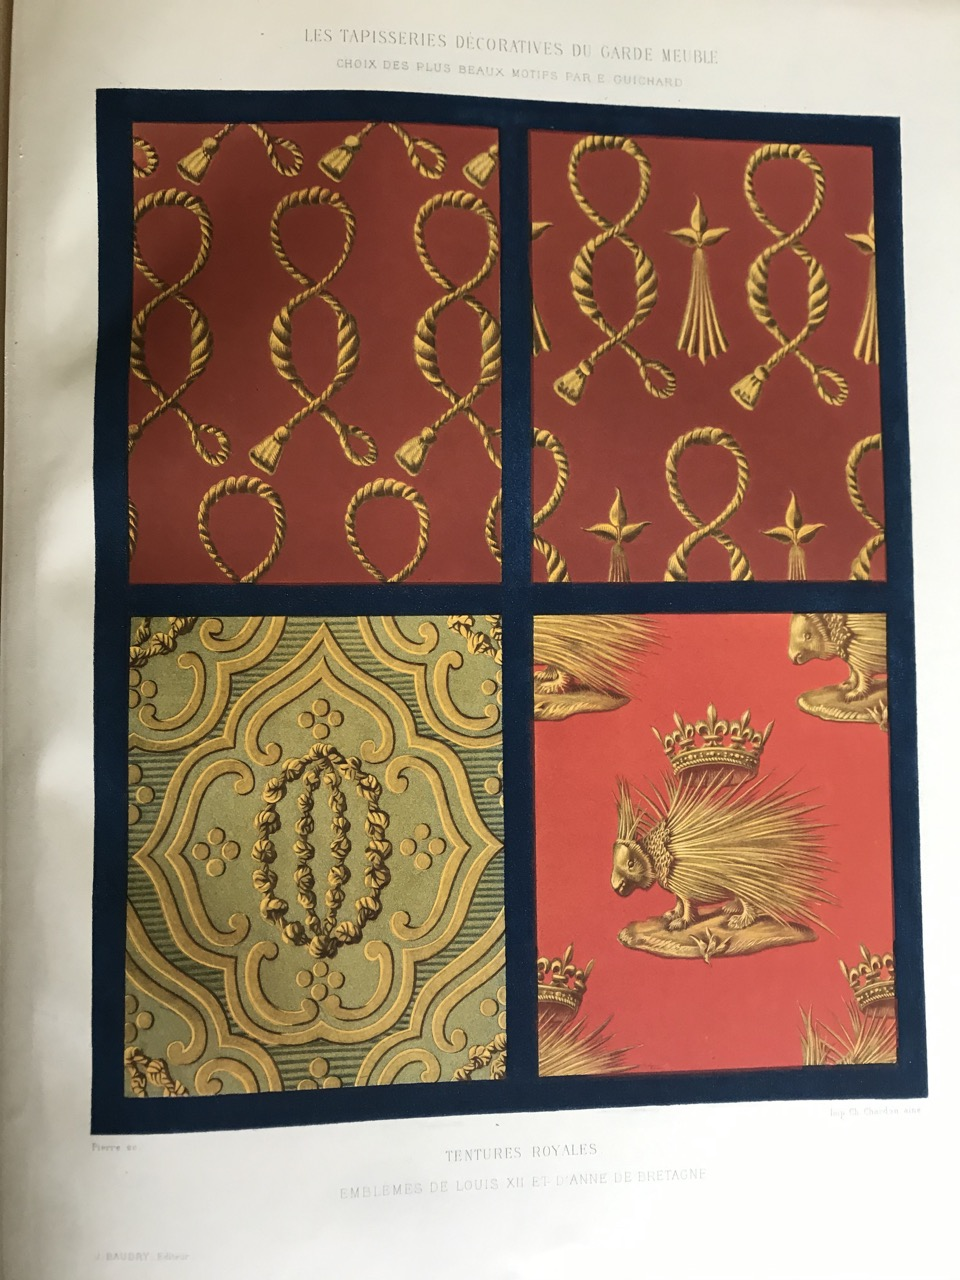 Image for [Decorative Tapestries of the French Royal Household] Les Tapisseries Decoratives du Garde-Meuble [mobilier nationale] Choix des Plus Beaux Motifs